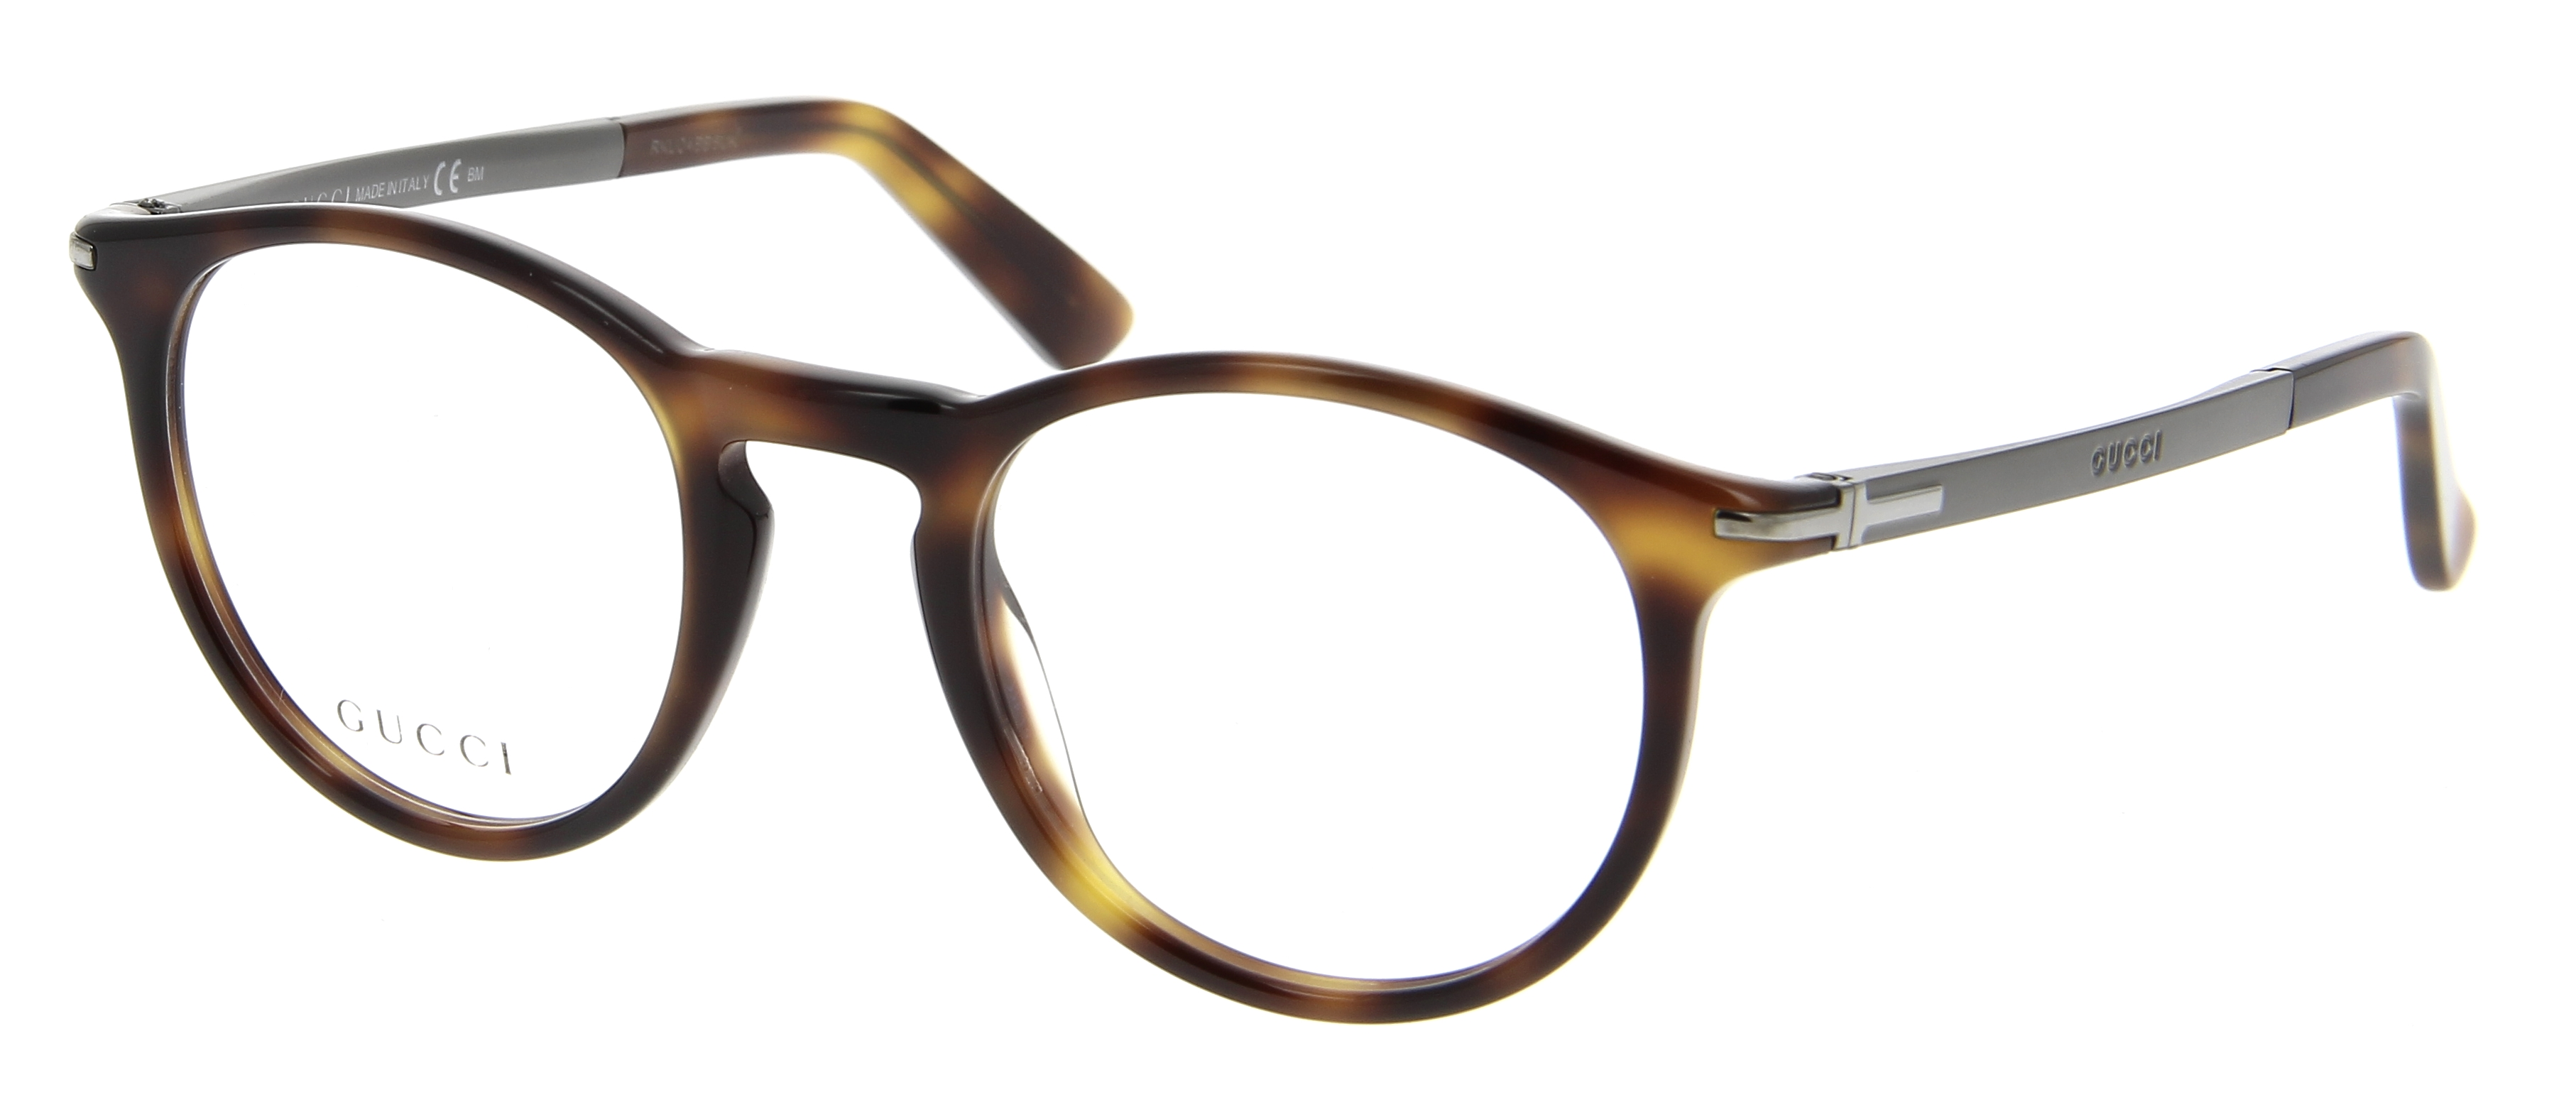 lunette de vue ray ban femme optical center